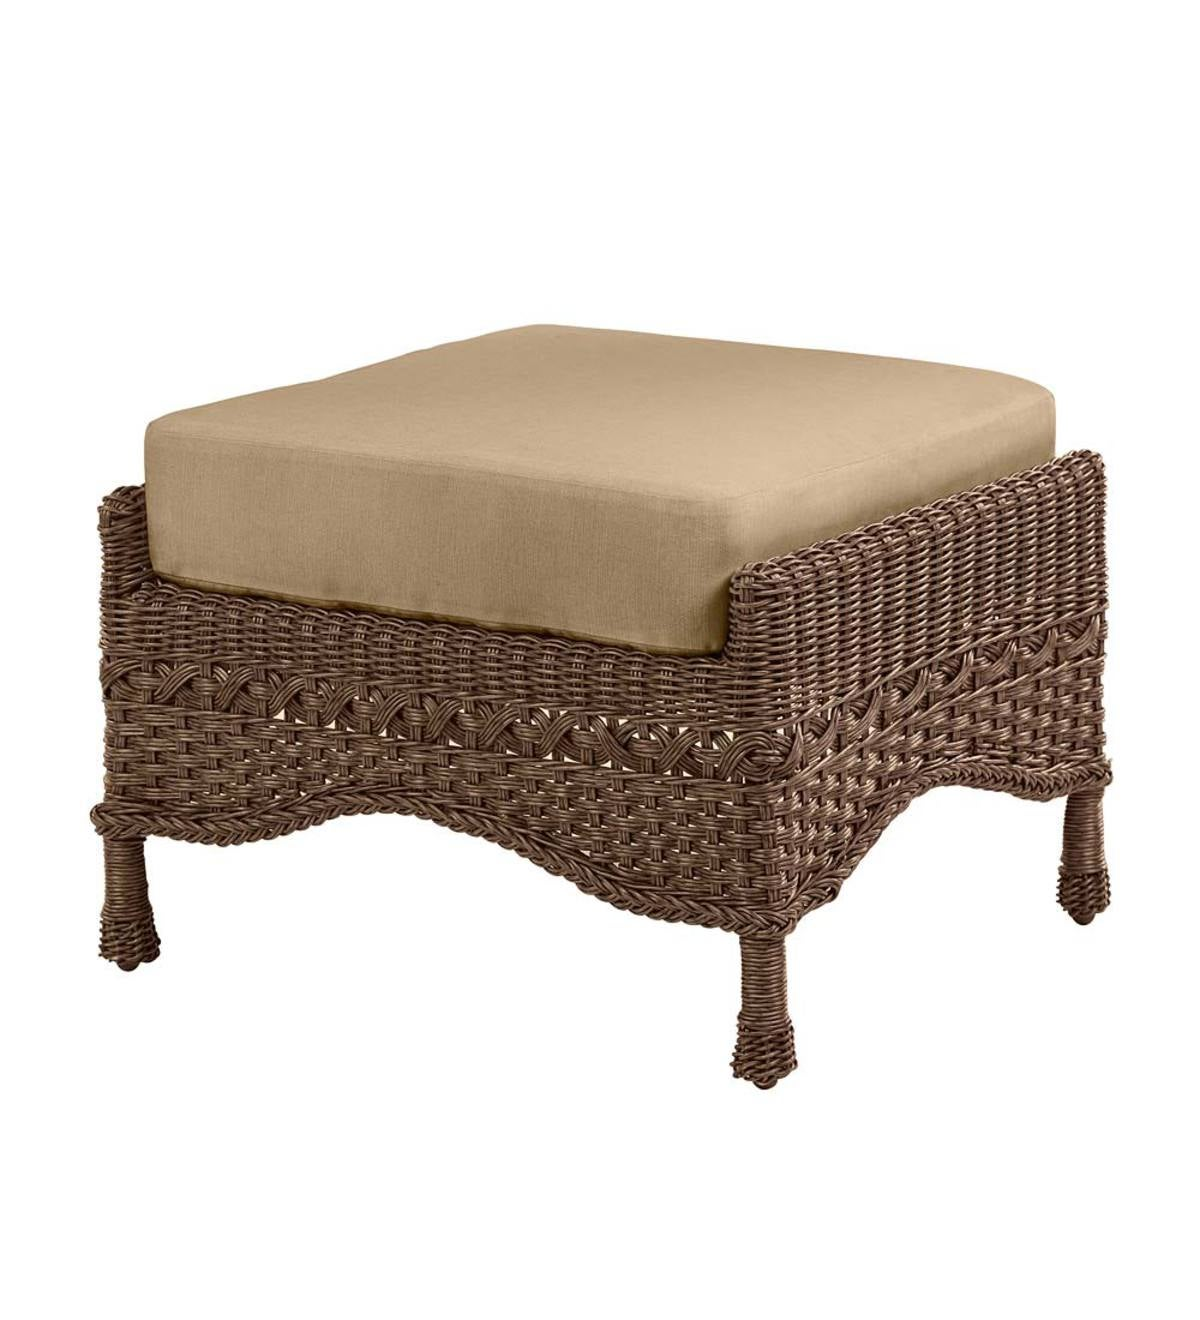 Prospect Hill Outdoor Wicker Deep Seating Ottoman With Cushion